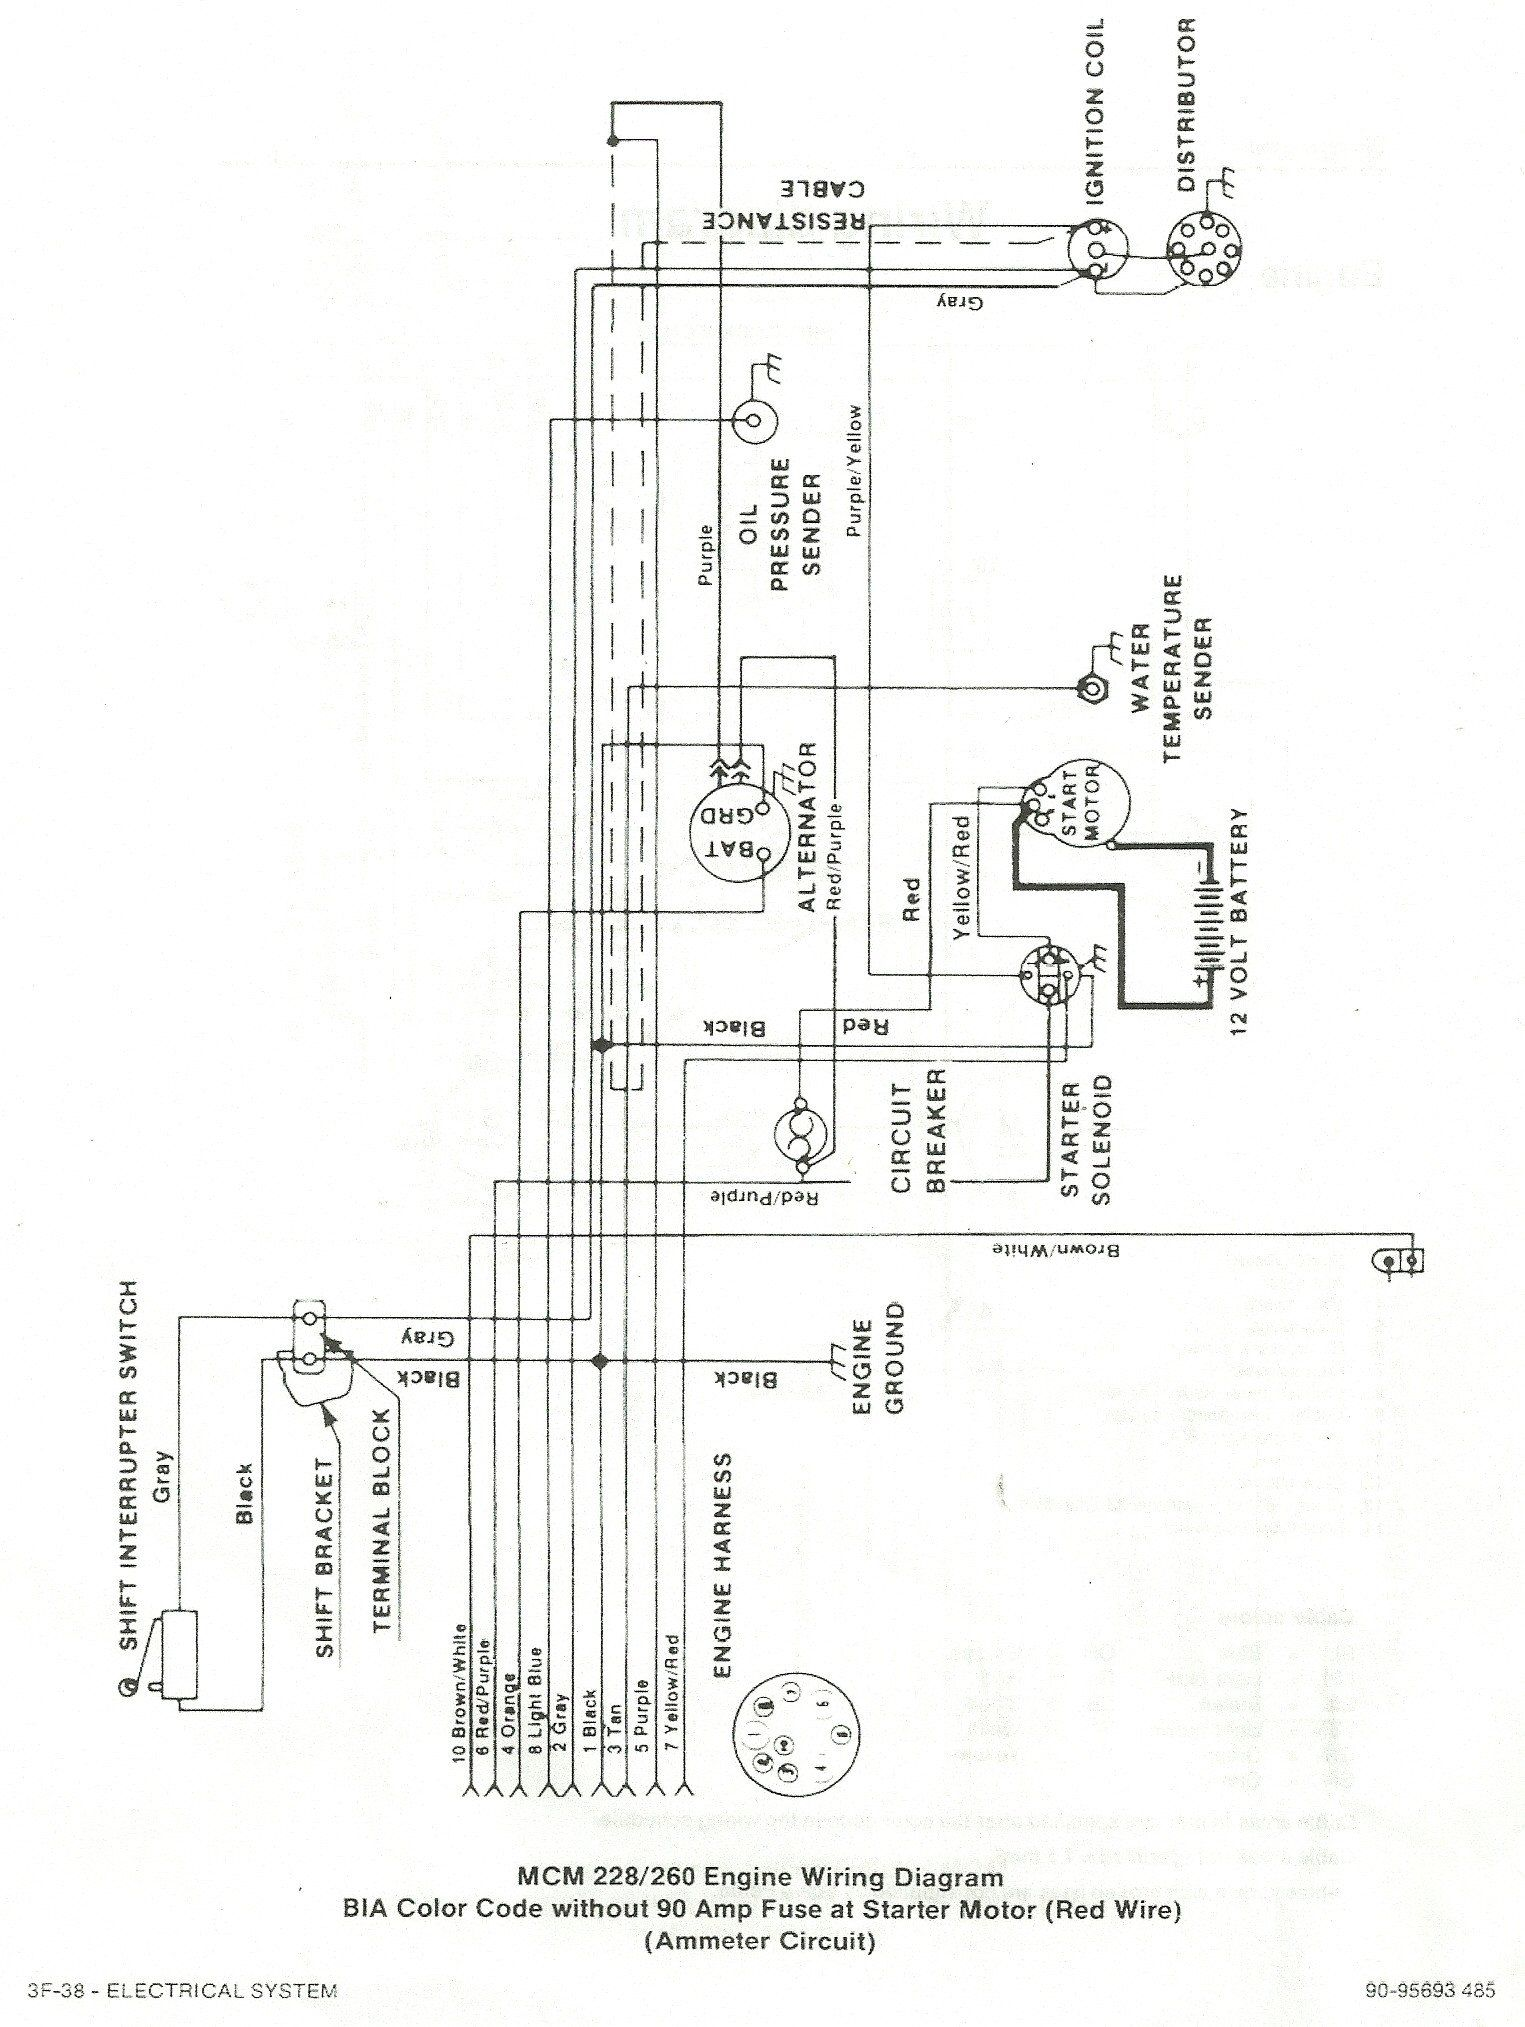 hight resolution of 1989 mercruiser 7 4 engine diagram wiring diagram toolbox 1984s 10 wiring diagram